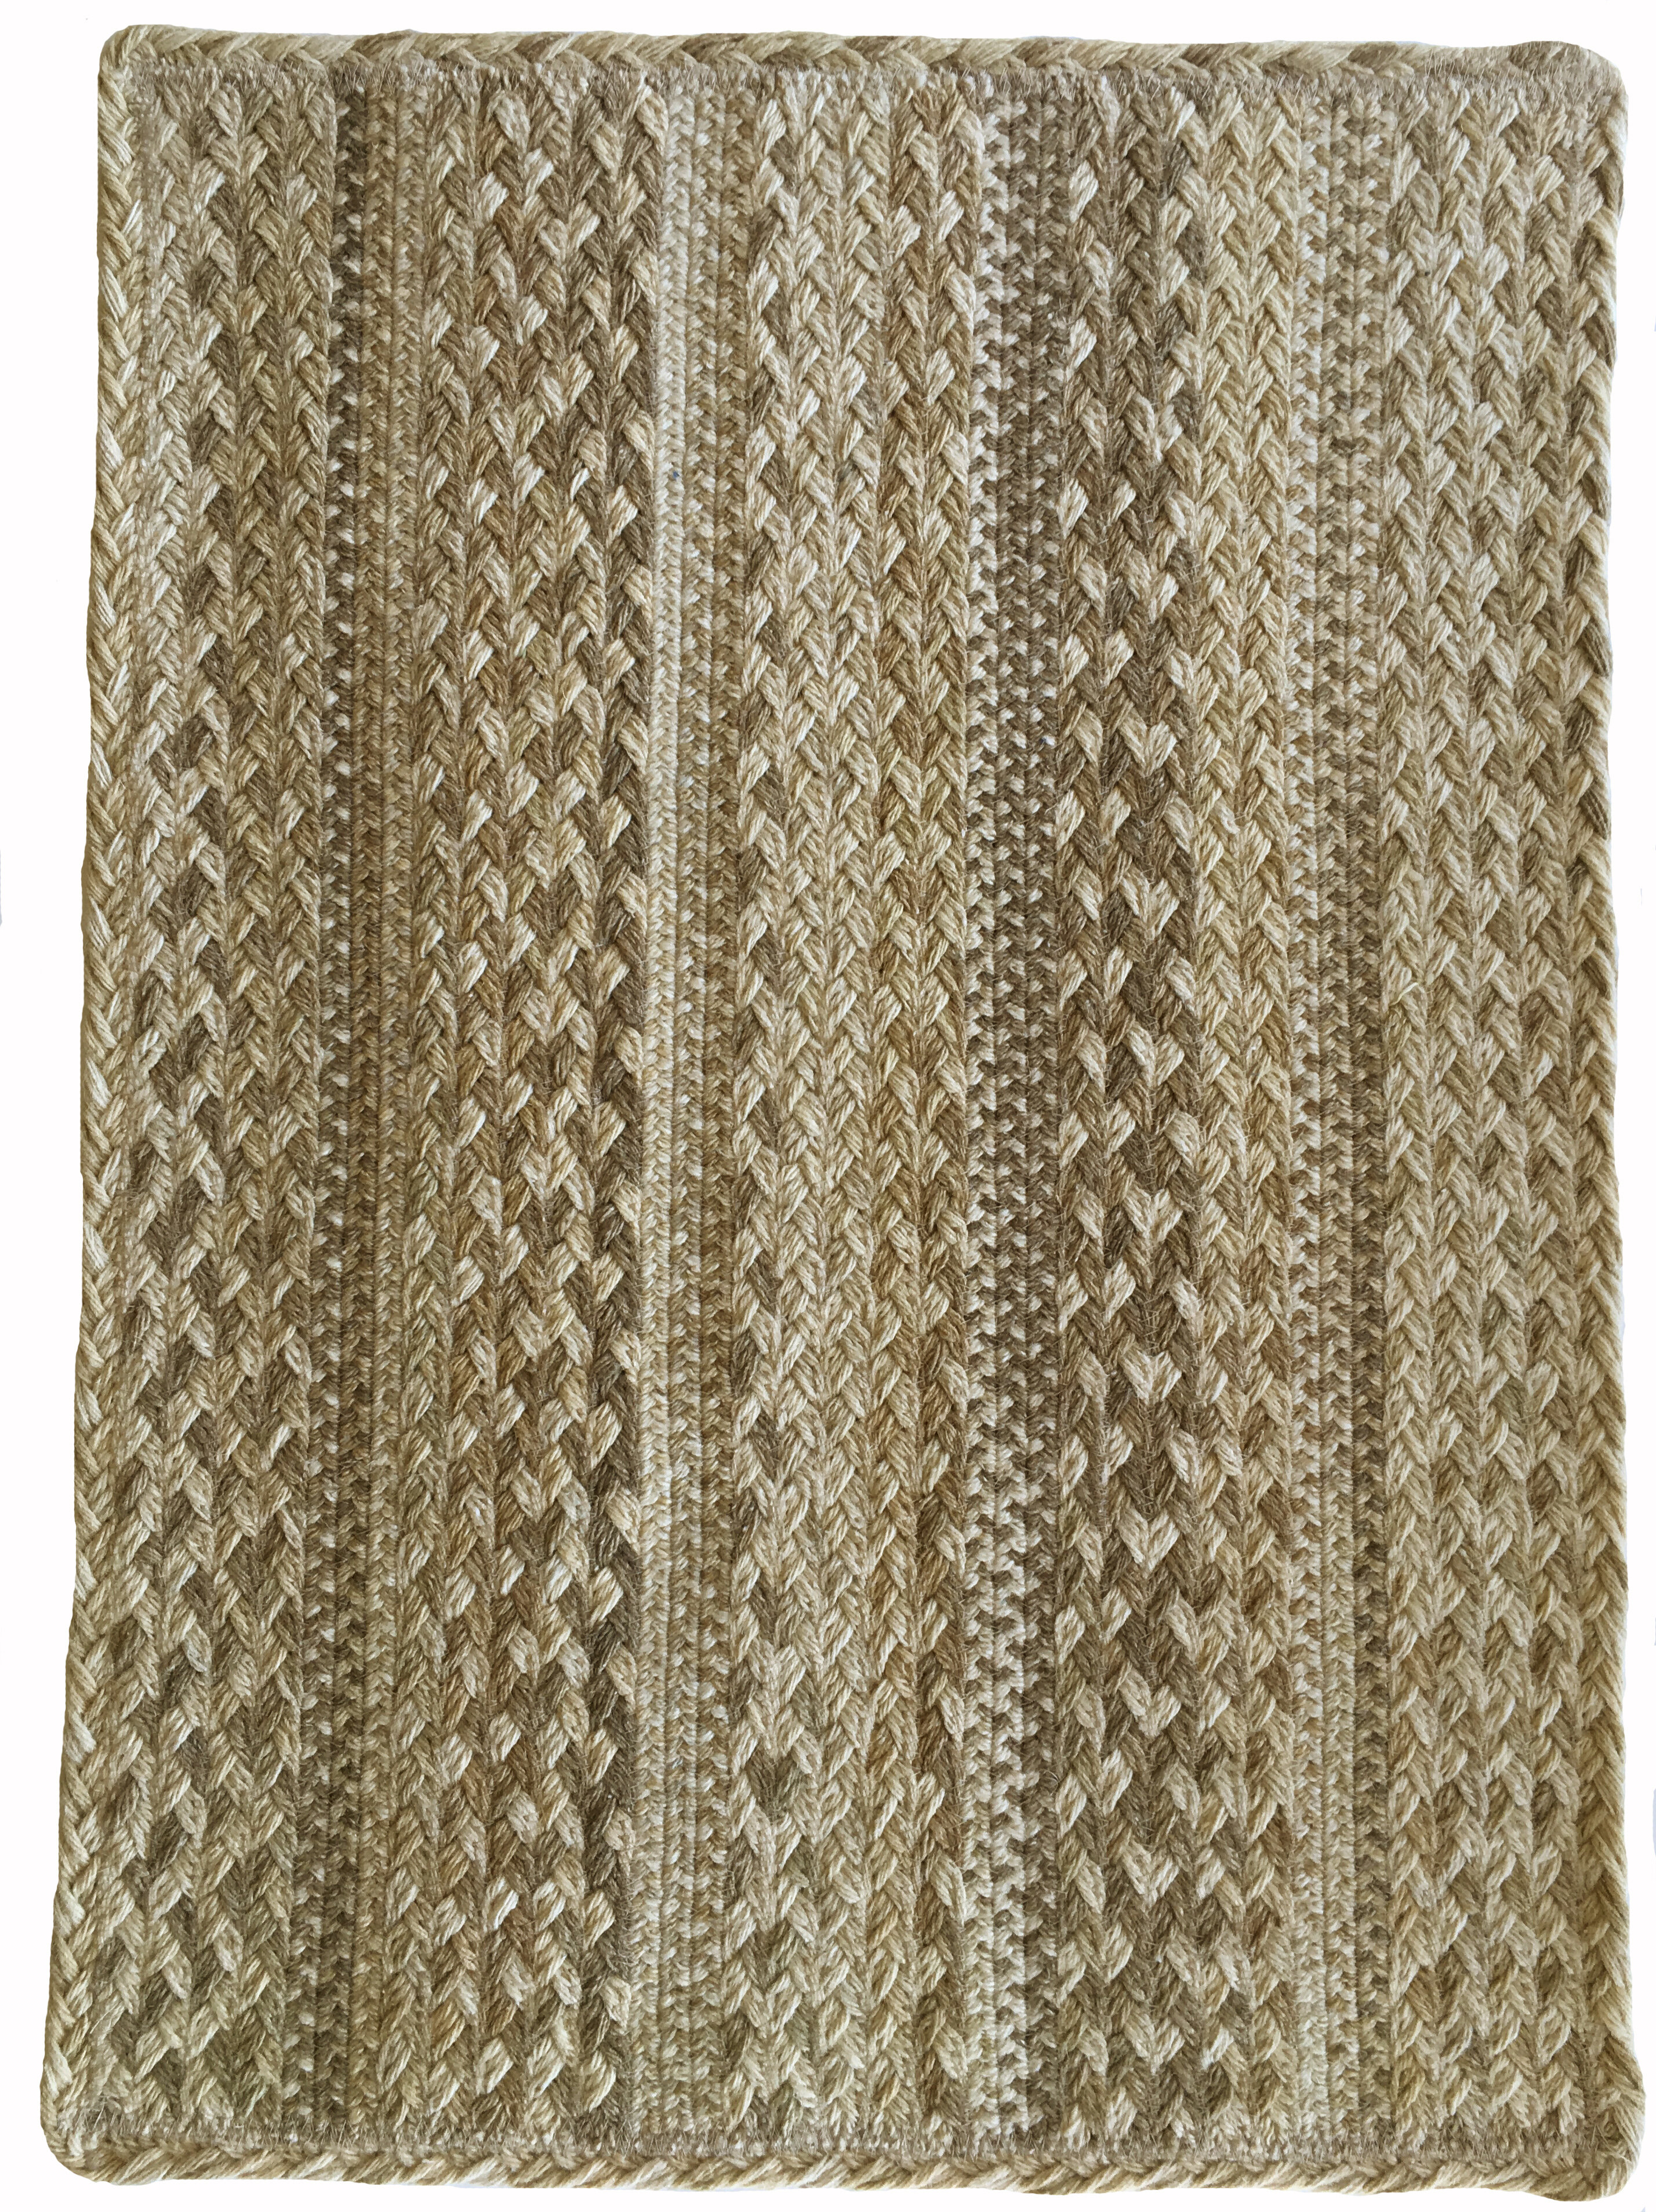 Cristian Hand Braided Wool Brown Area Rug